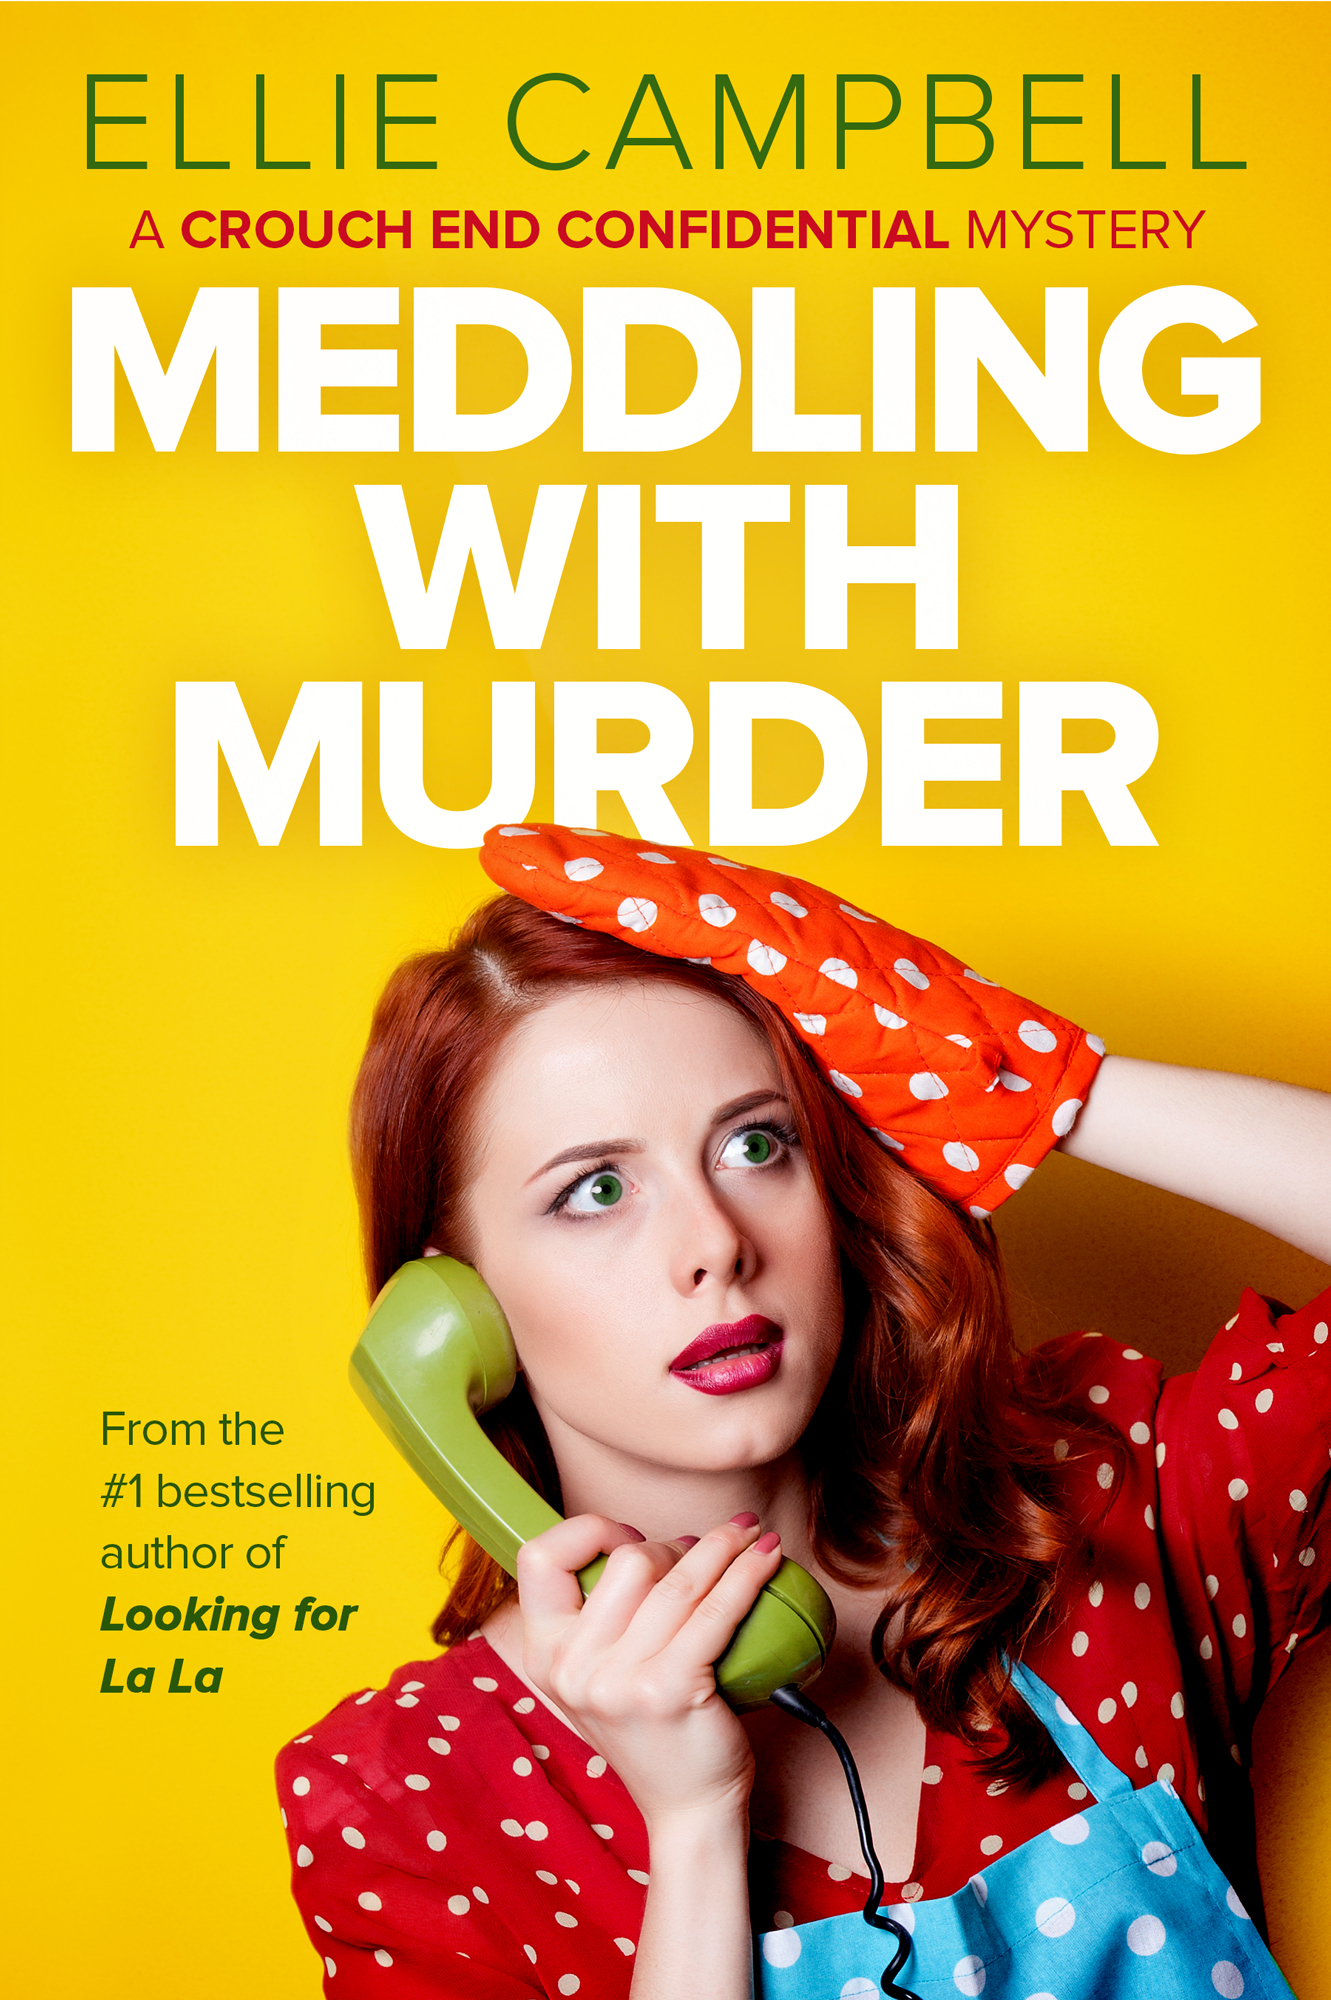 Meddling With Murder by Ellie Campbell